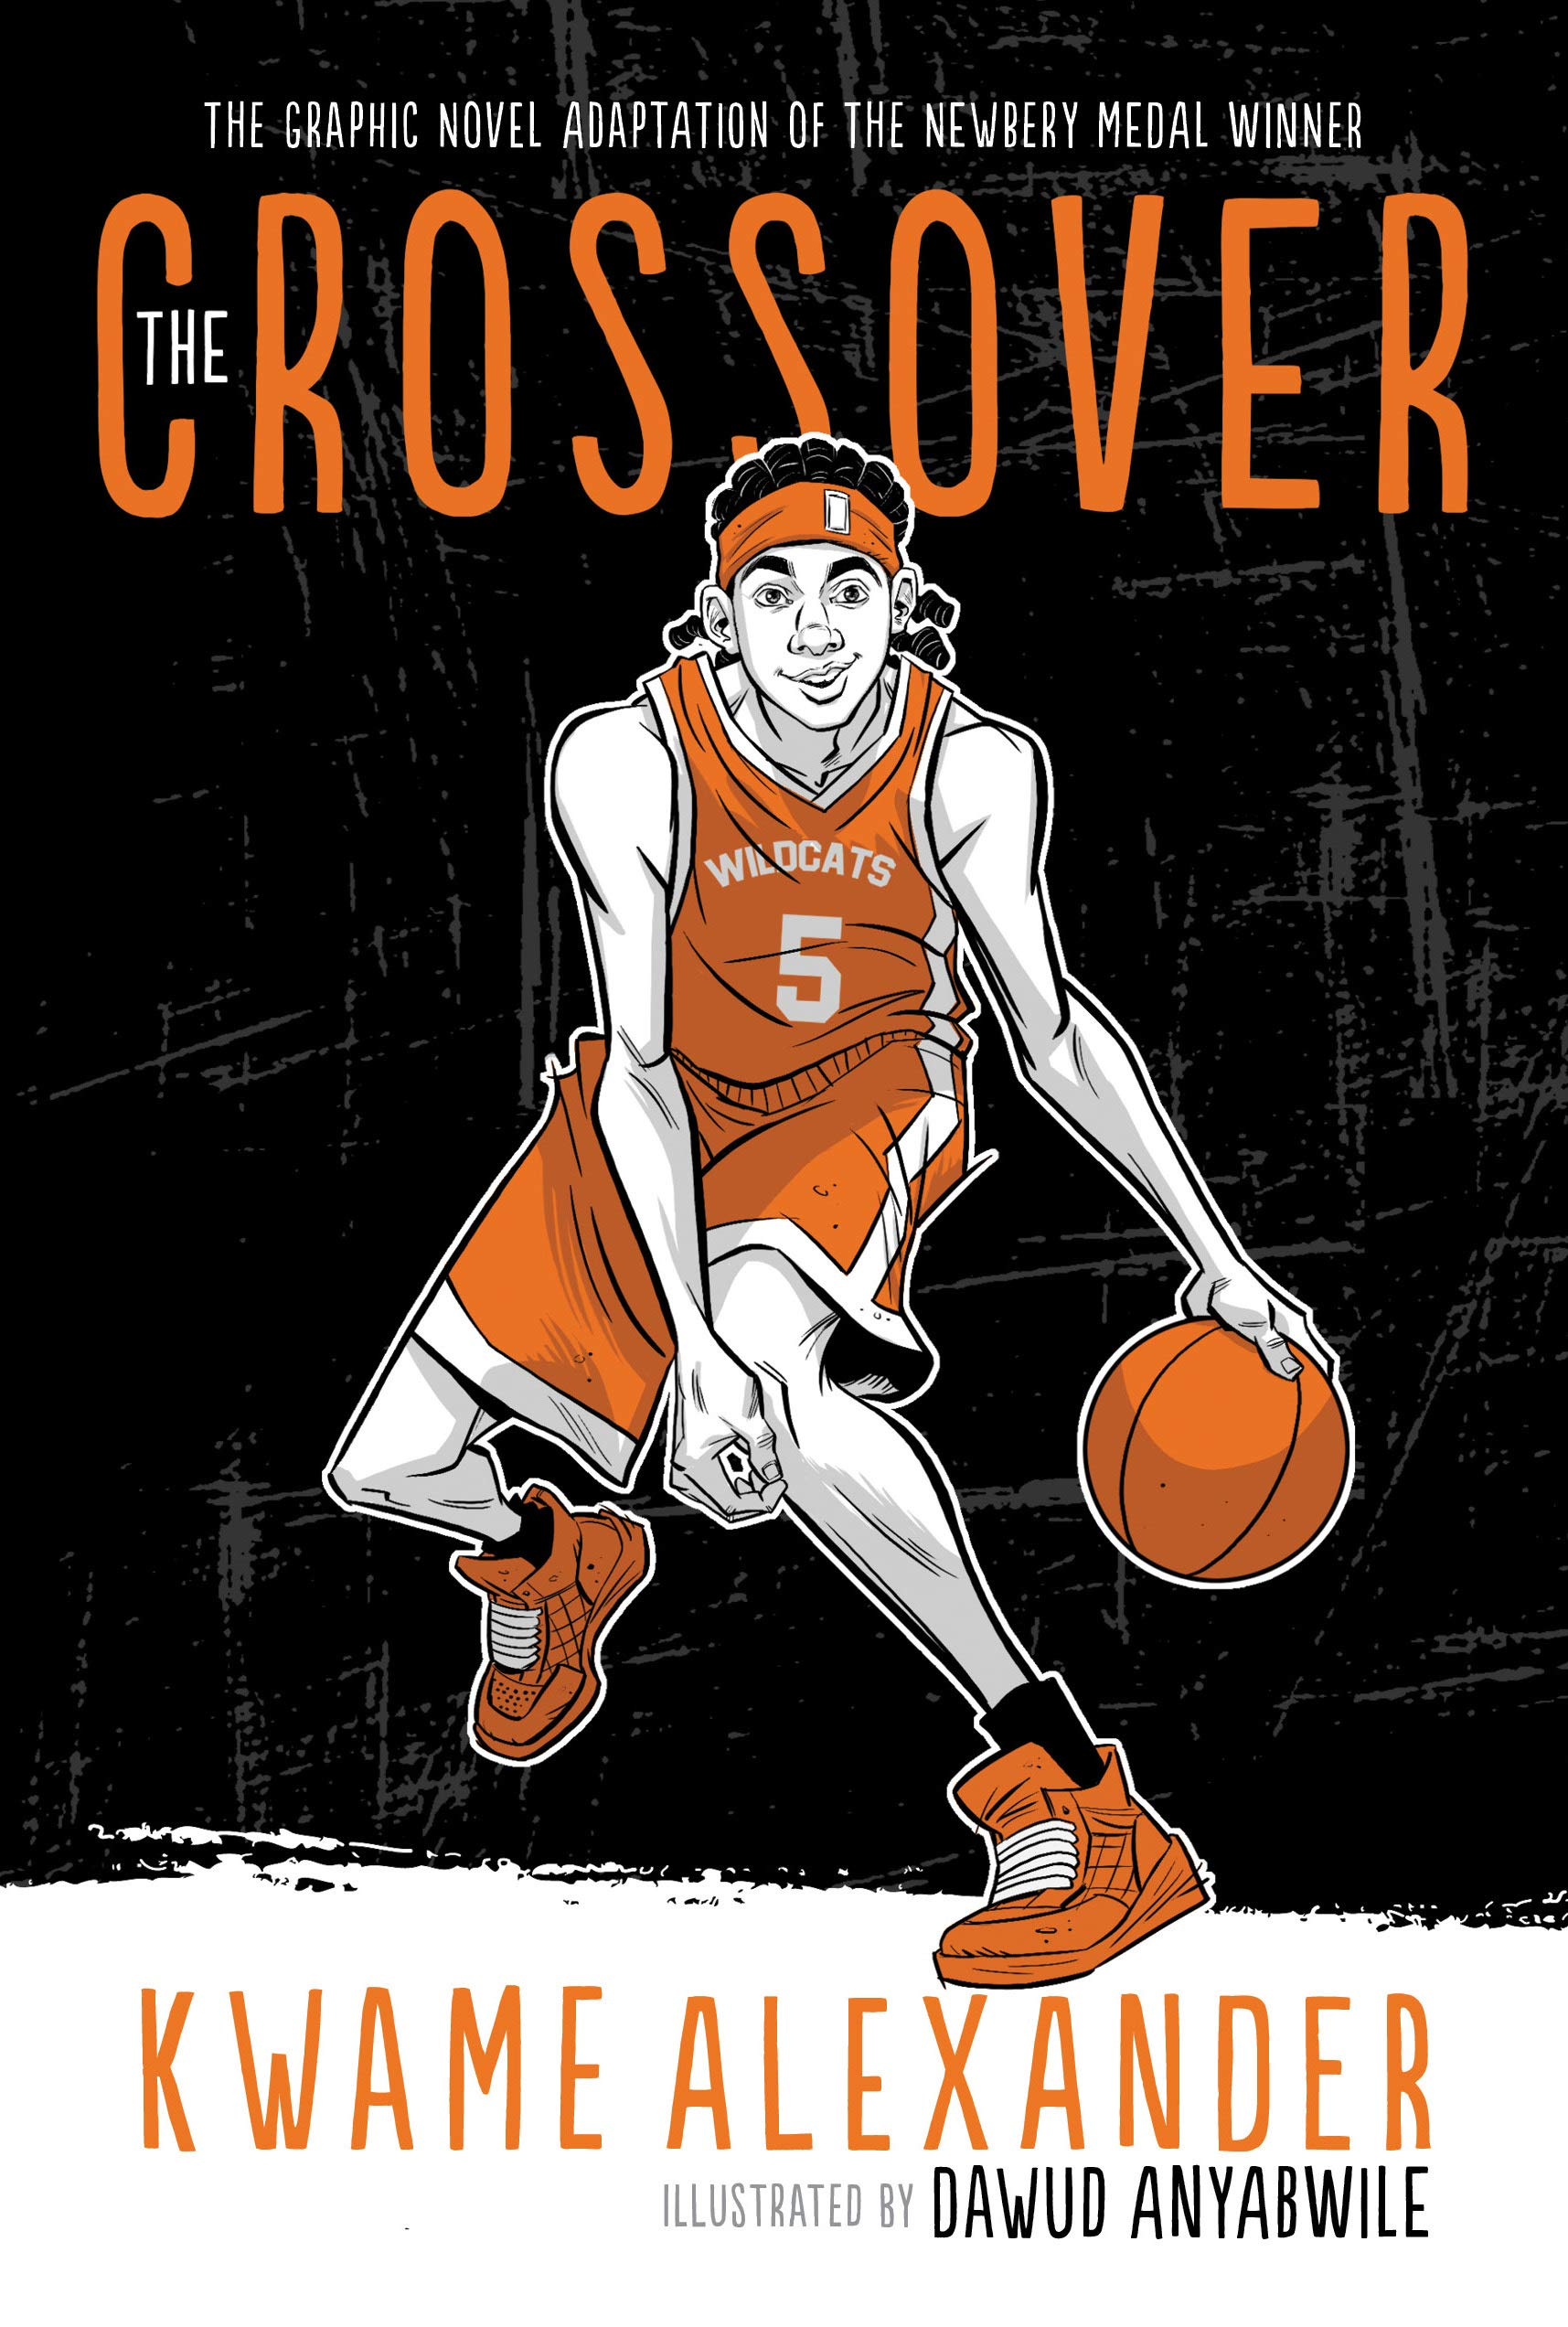 Amazon.com: The Crossover (Graphic Novel) (The Crossover Series ...